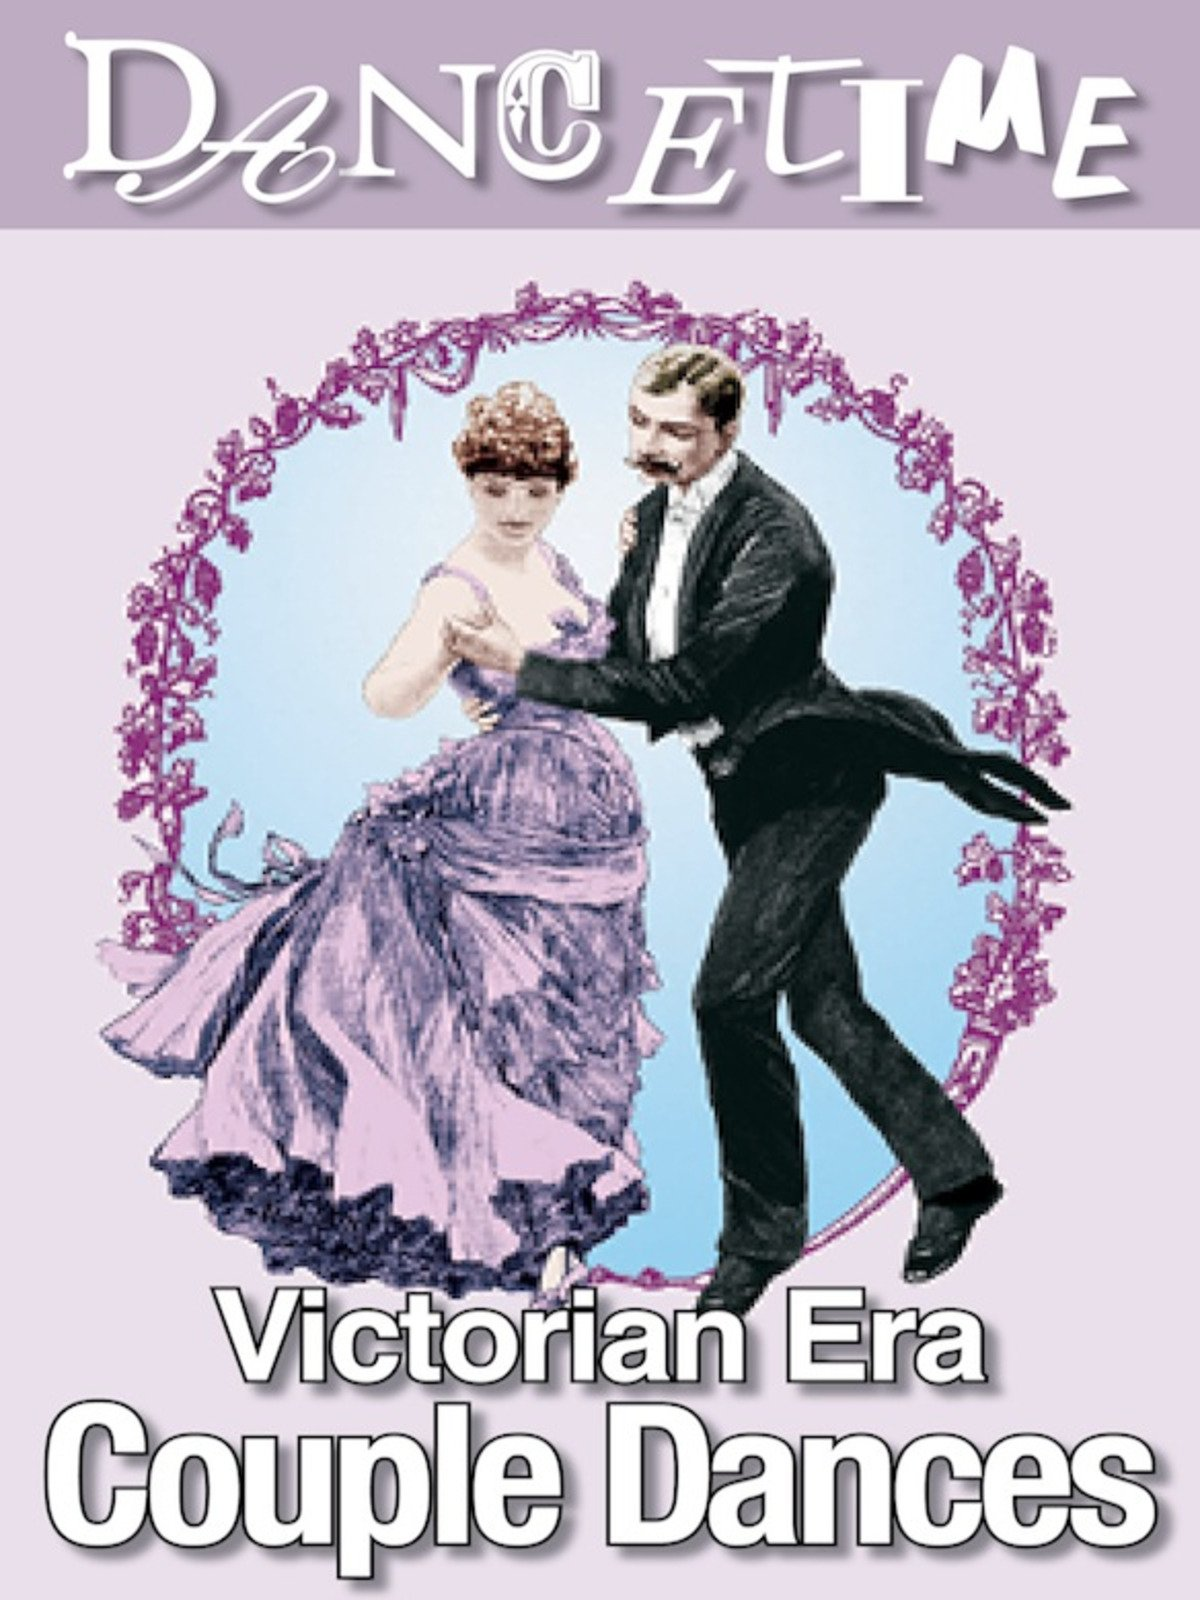 Dancetime: Victorian Era Couple Dances